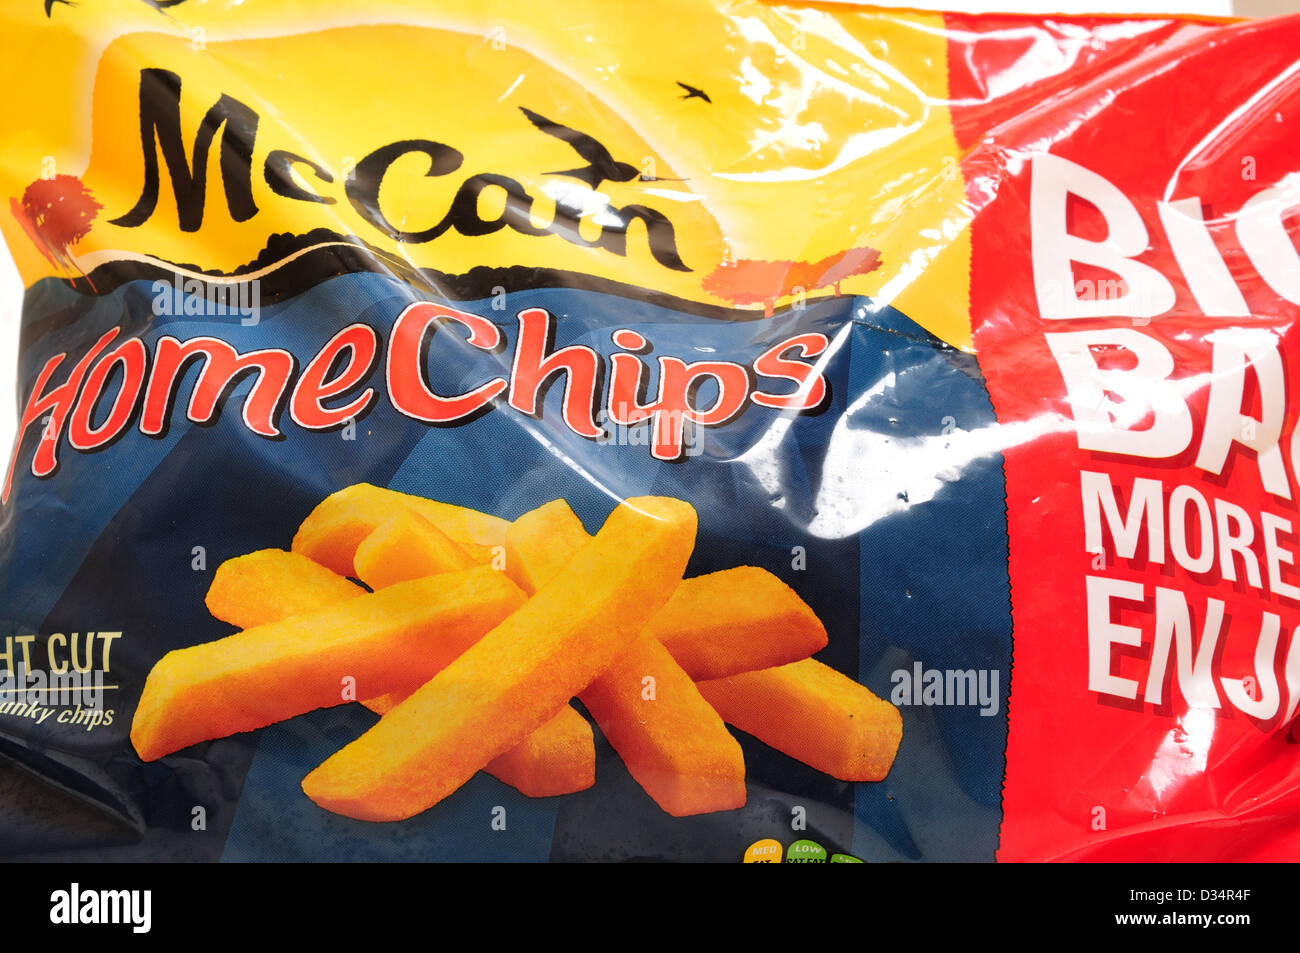 McCain Frozen Oven Chips Stock Photo: 53581039 - Alamy